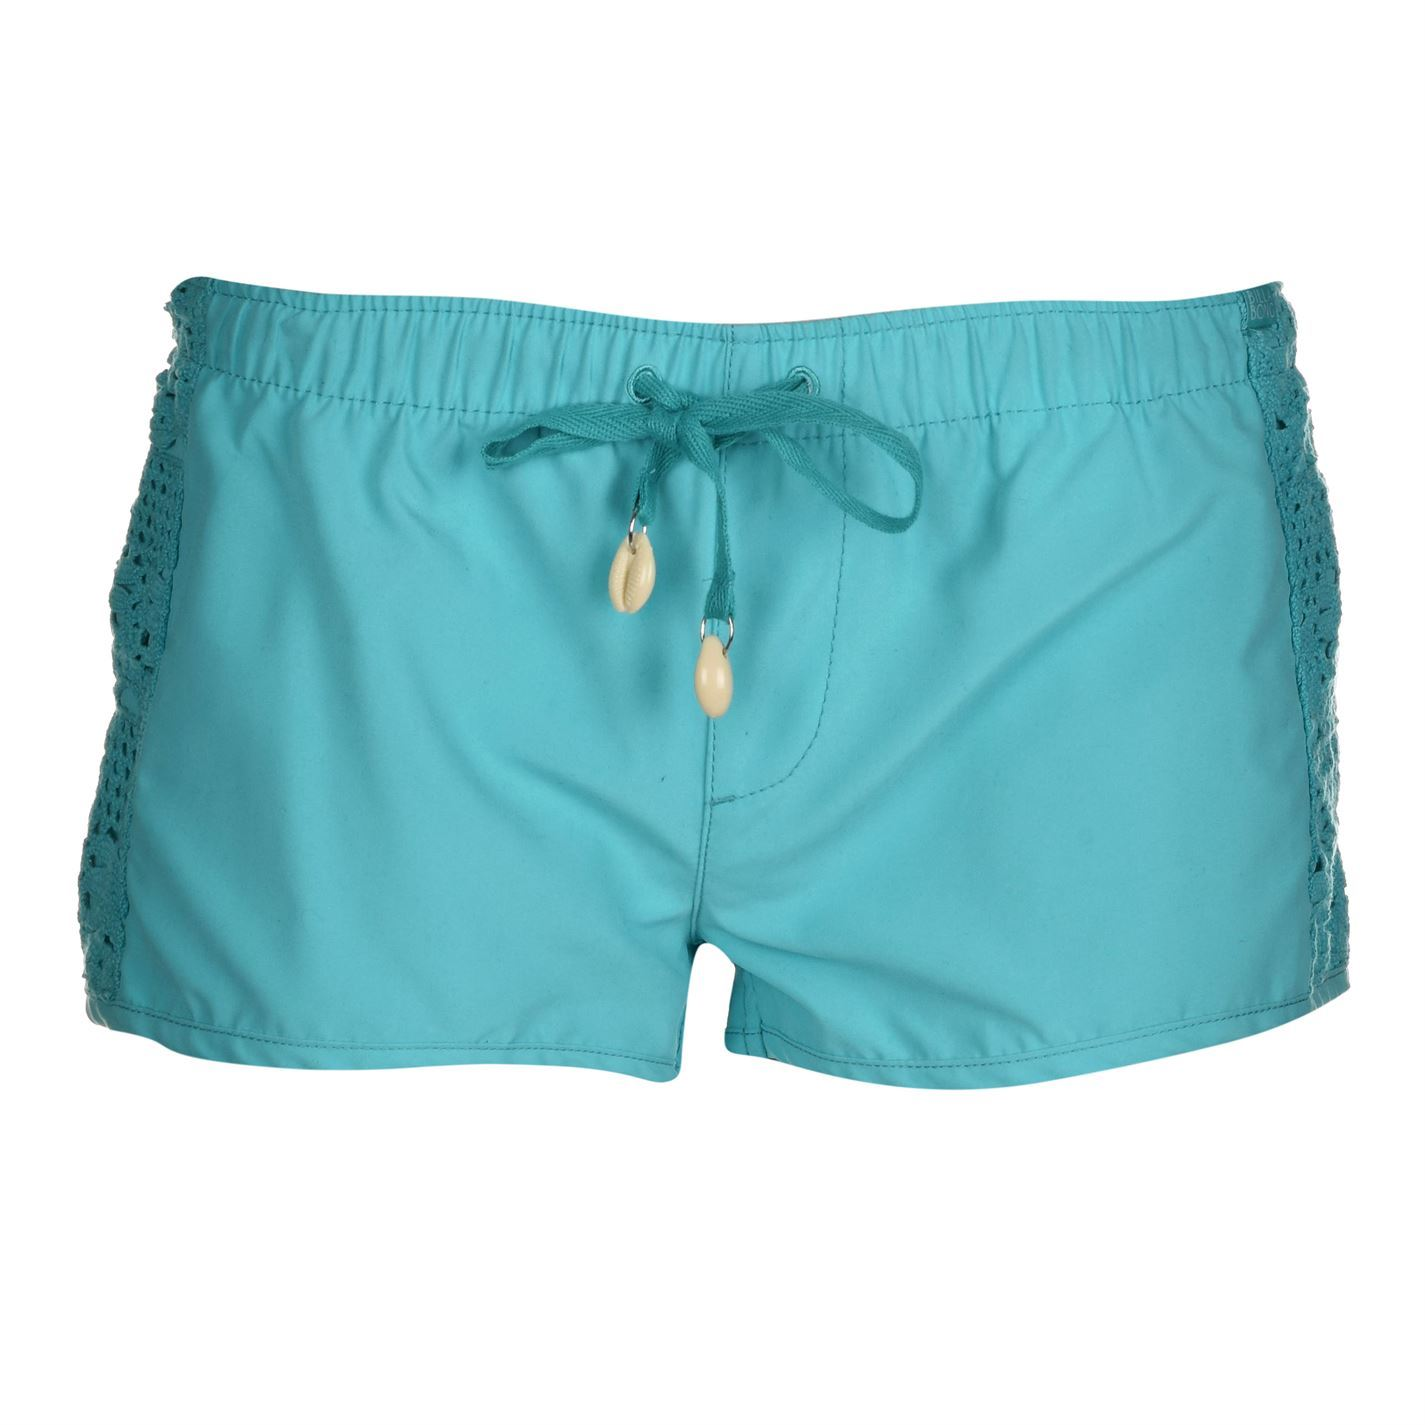 Unique Women39s Swim Shorts  Shop For Women39s Swim Shorts At Wwwtwengacouk